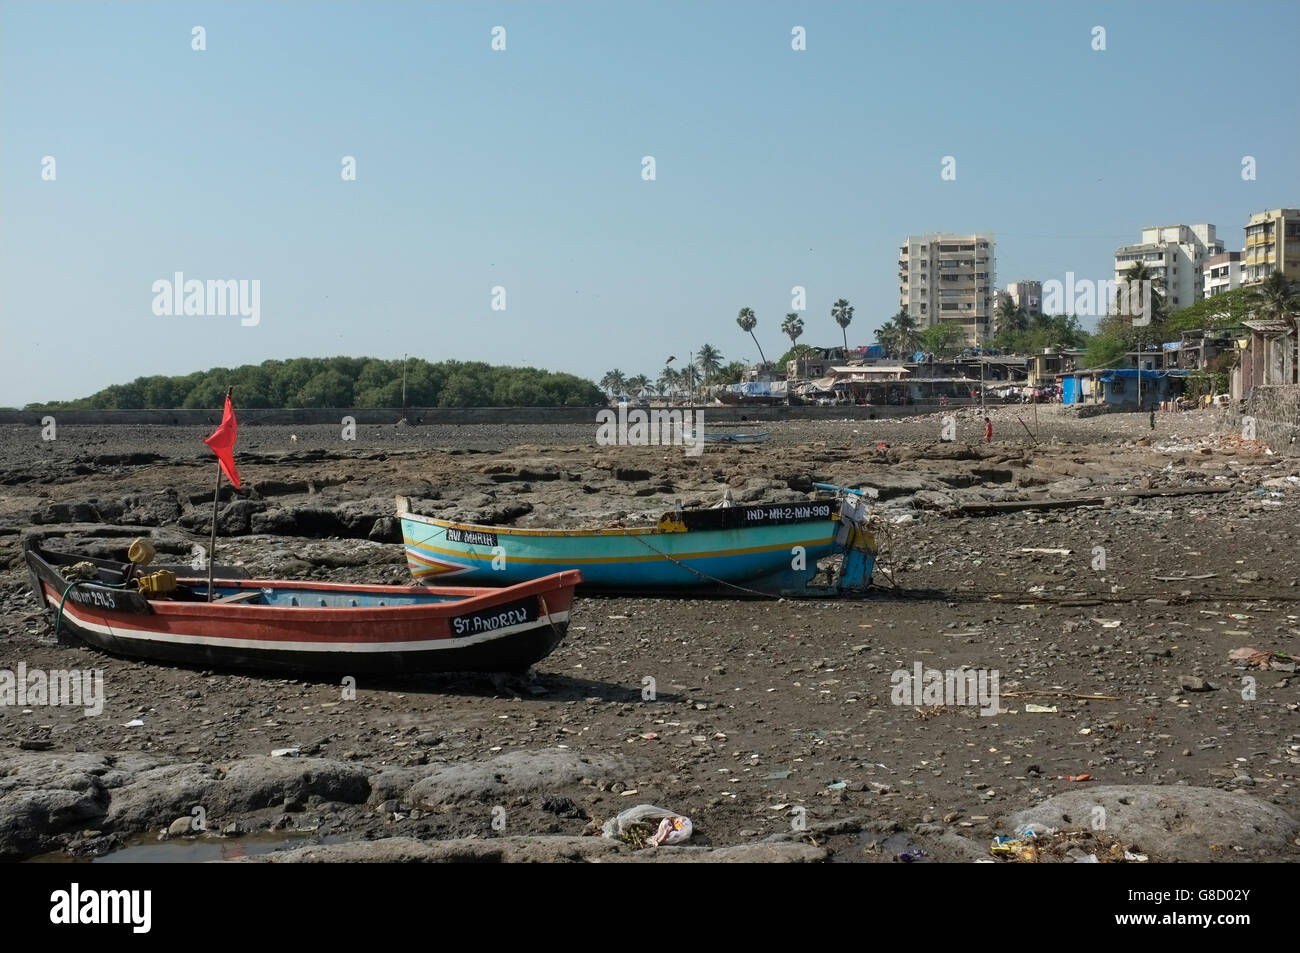 boats on the beach front at the slum area of chimbai village, bandra, mumbai, india - Stock Image